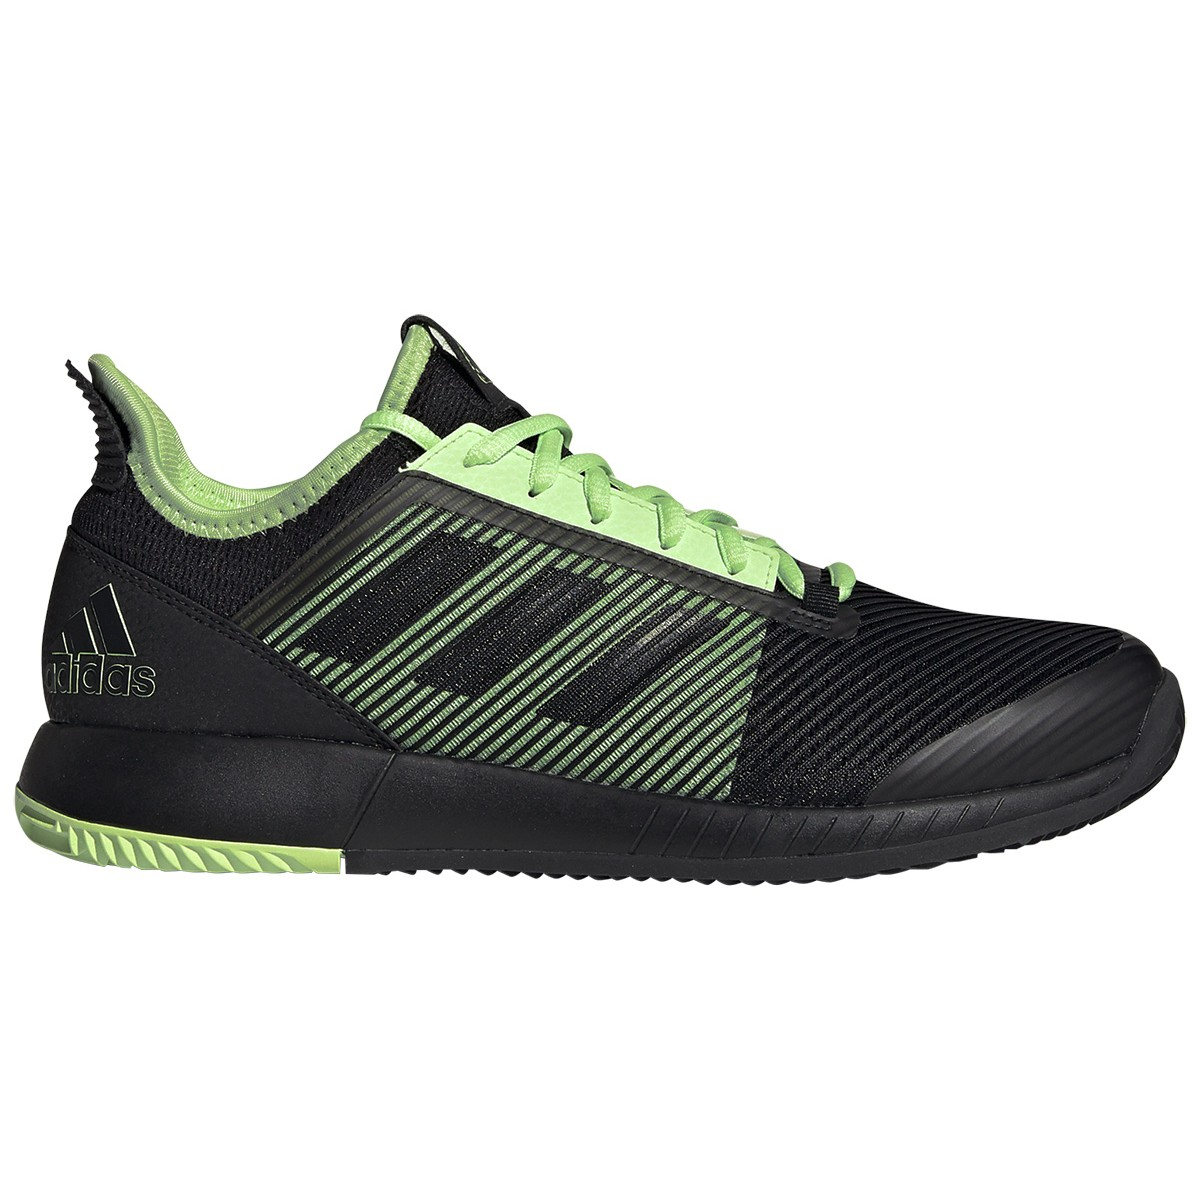 WOMEN'S ADIDAS ADIZERO DEFIANT BOUNCE CLAY COURT SHOES